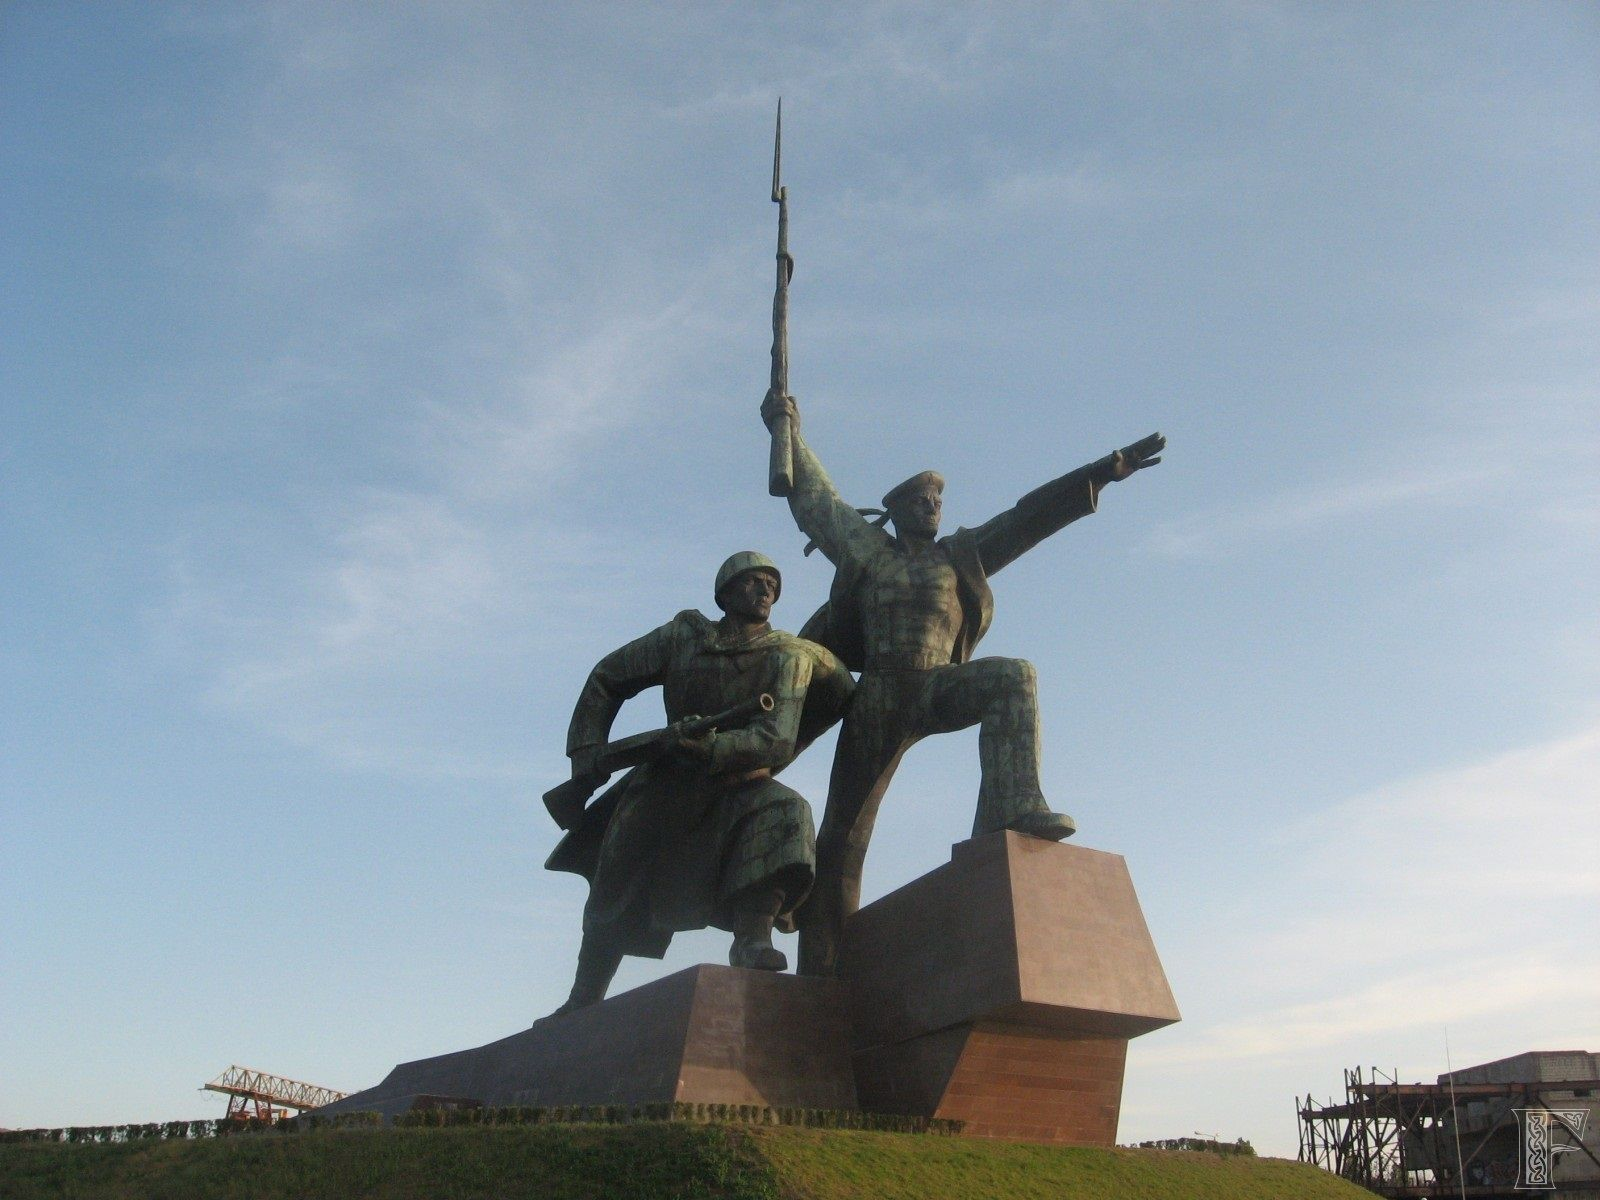 Cccp Soldier And Sailor Memorial Is A 40 Metre Tall Sculpture Built In Sevastopol Ukraine Approval For The Monument Was First Granted By Th Monument Vrijheid